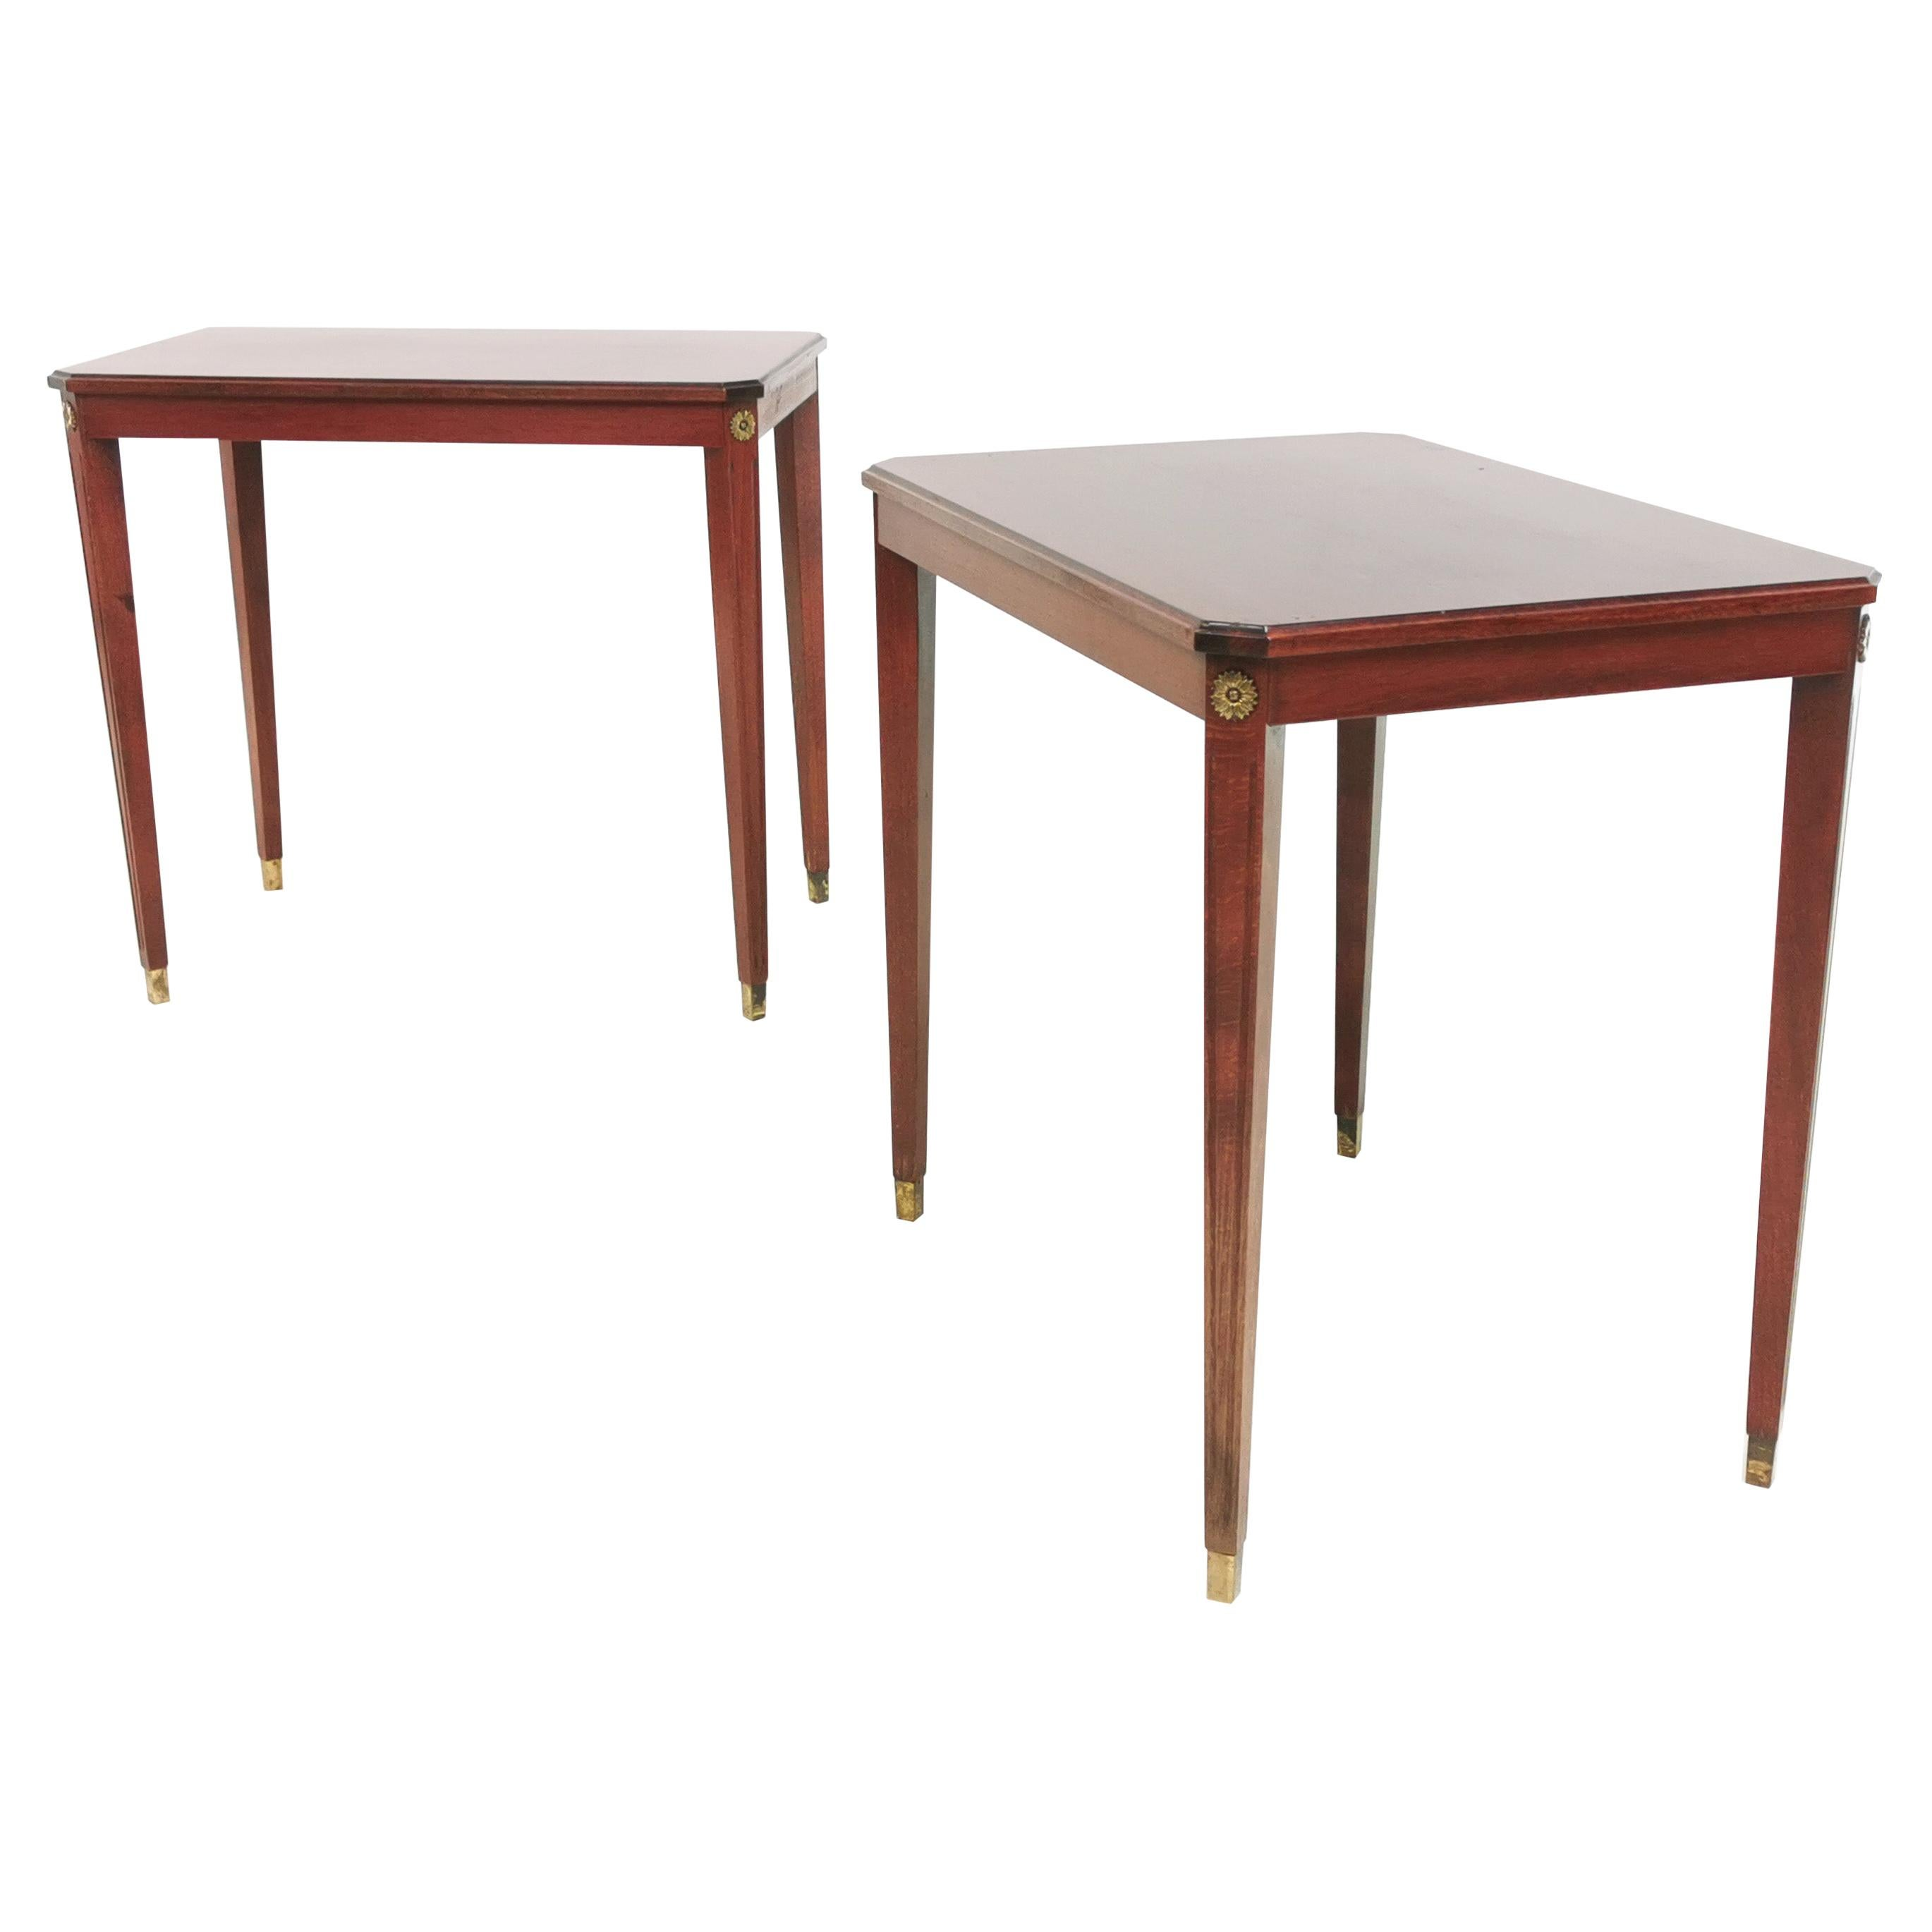 Pair of Vintage French Empire Style Side Tables